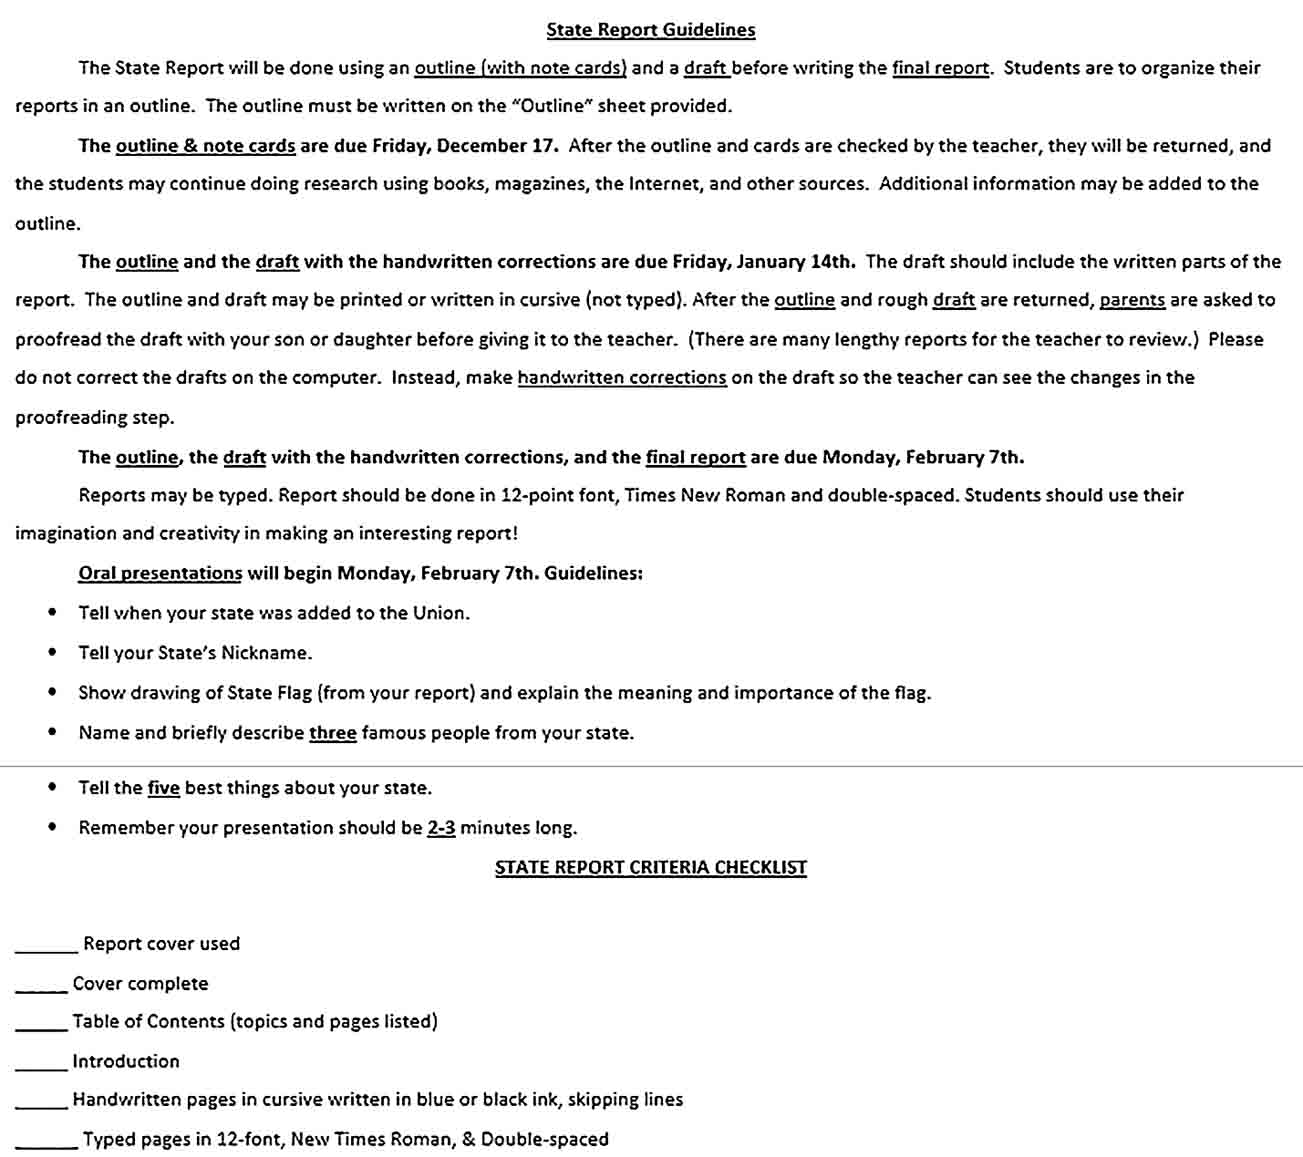 Report Outline Template  room surf.com Pertaining To Blank Autopsy Report Template